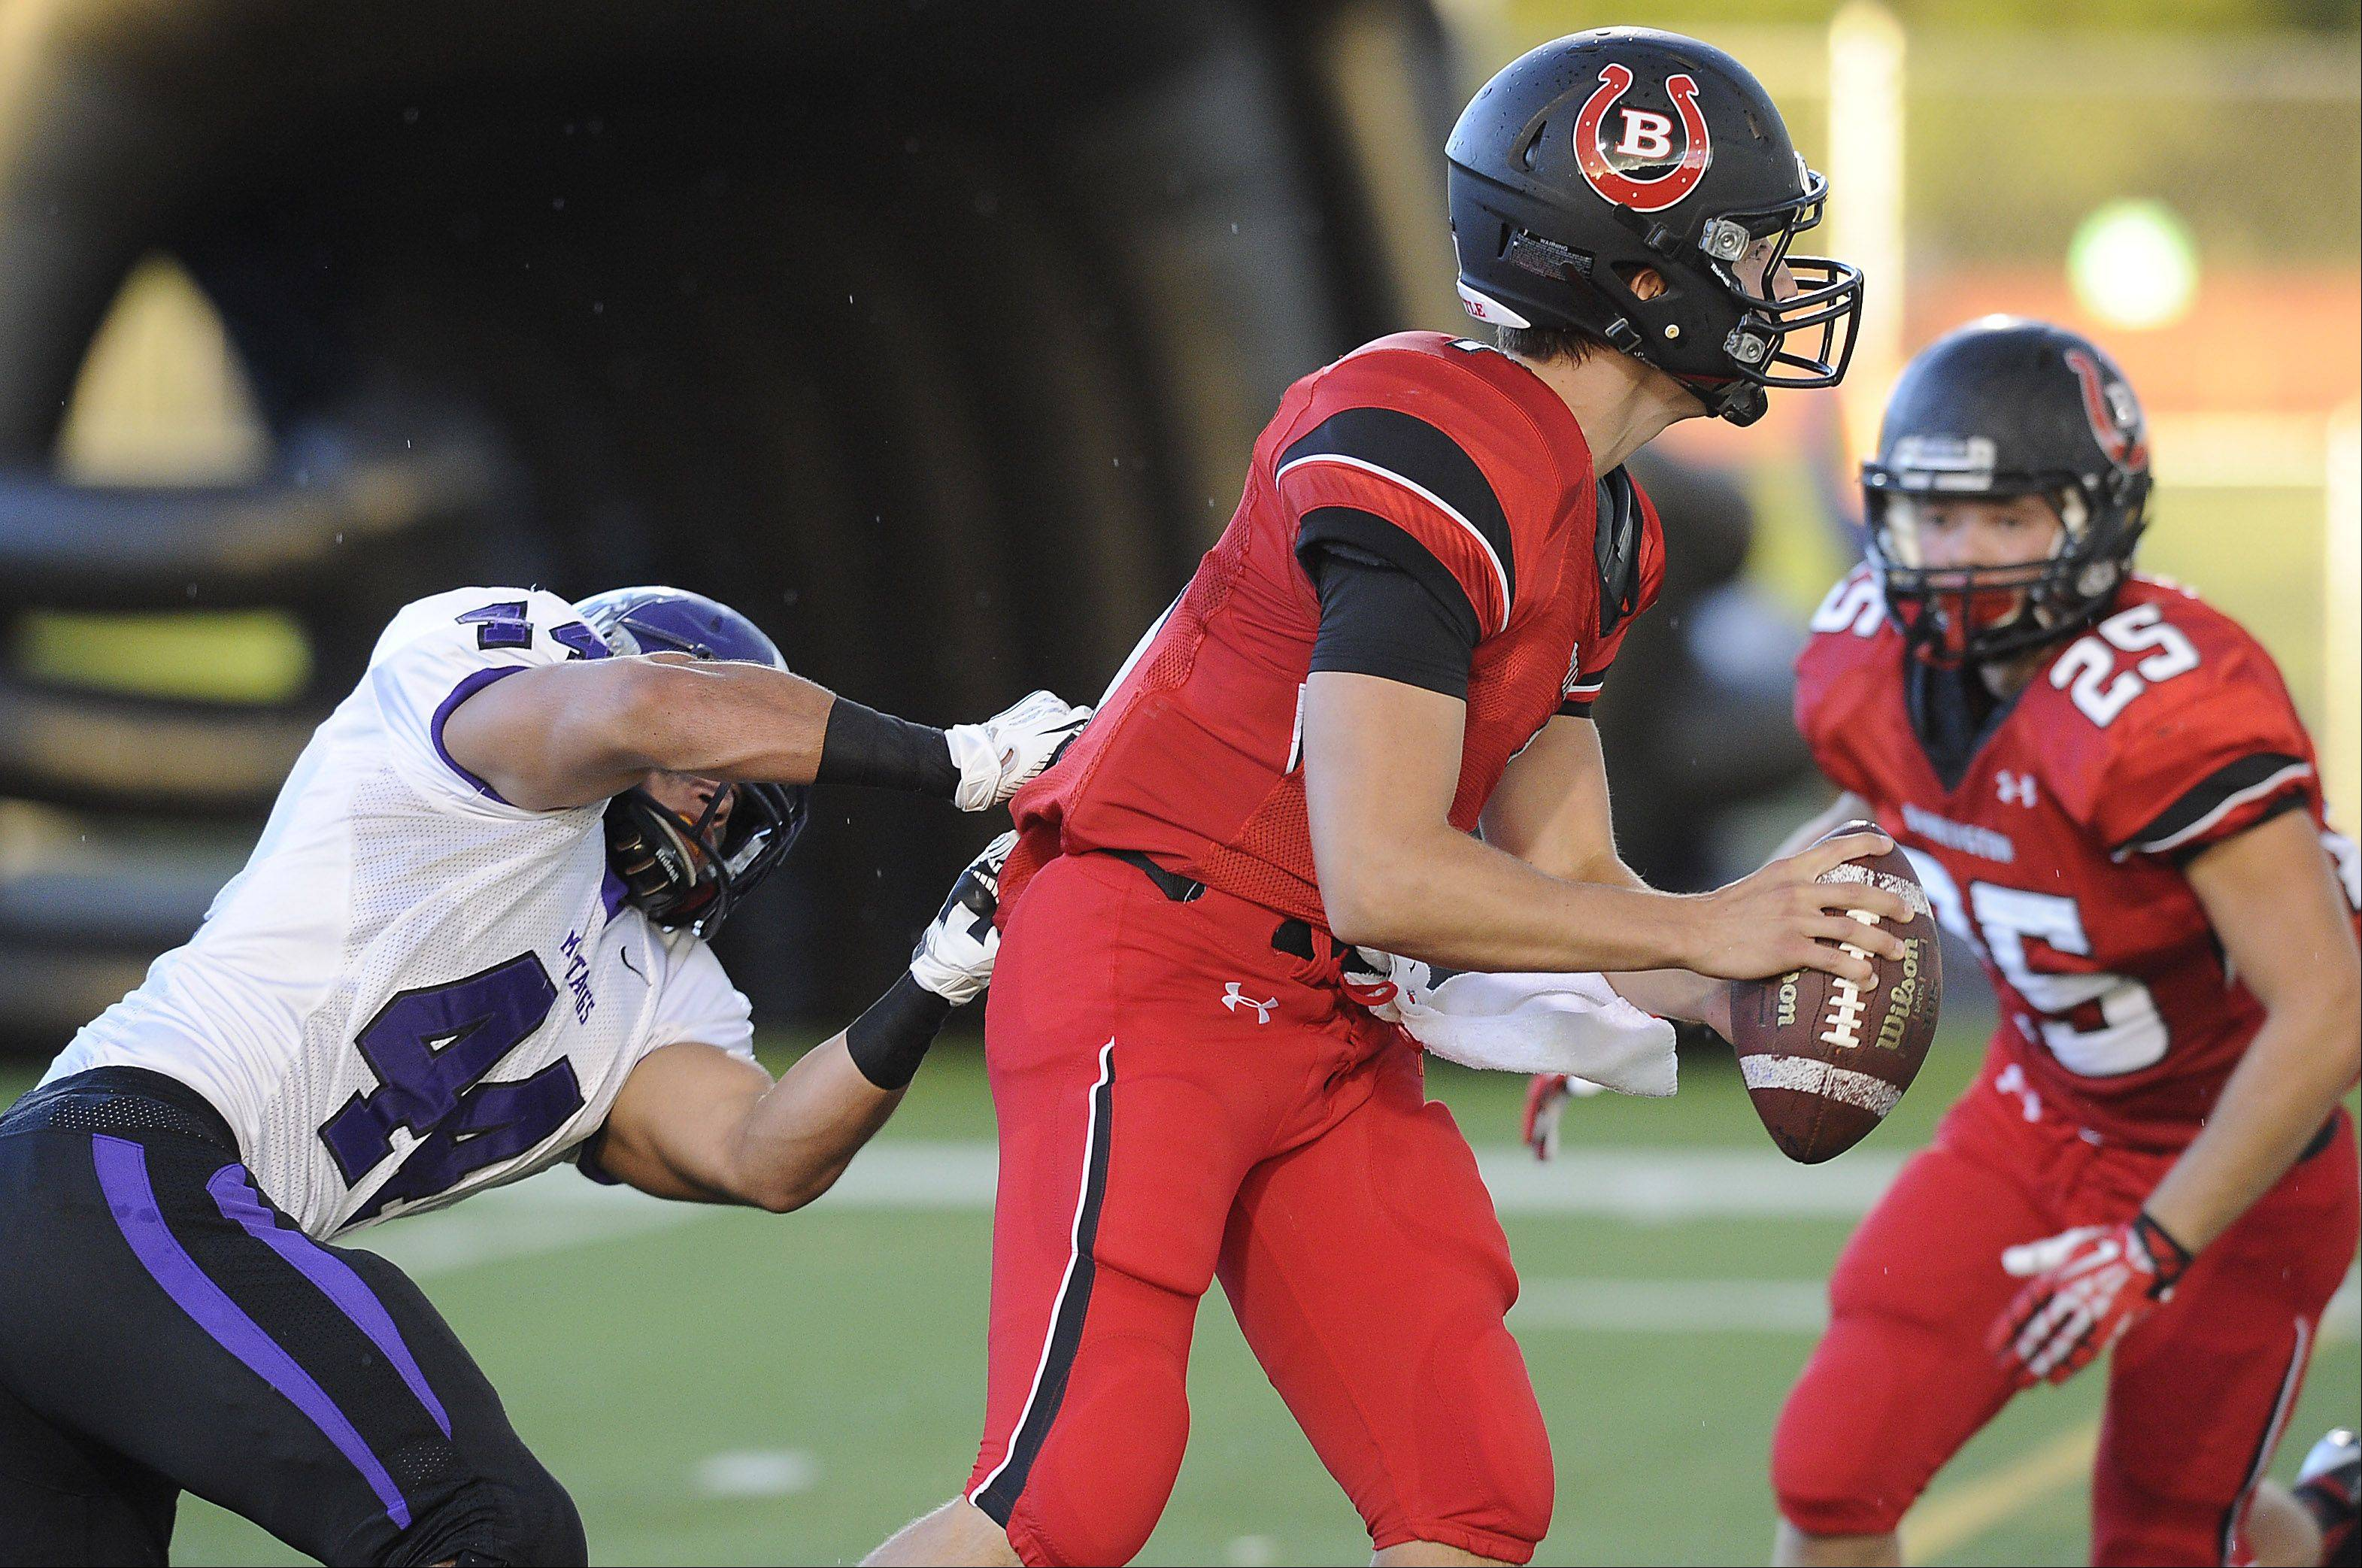 Images: Barrington vs. Rolling Meadows, football